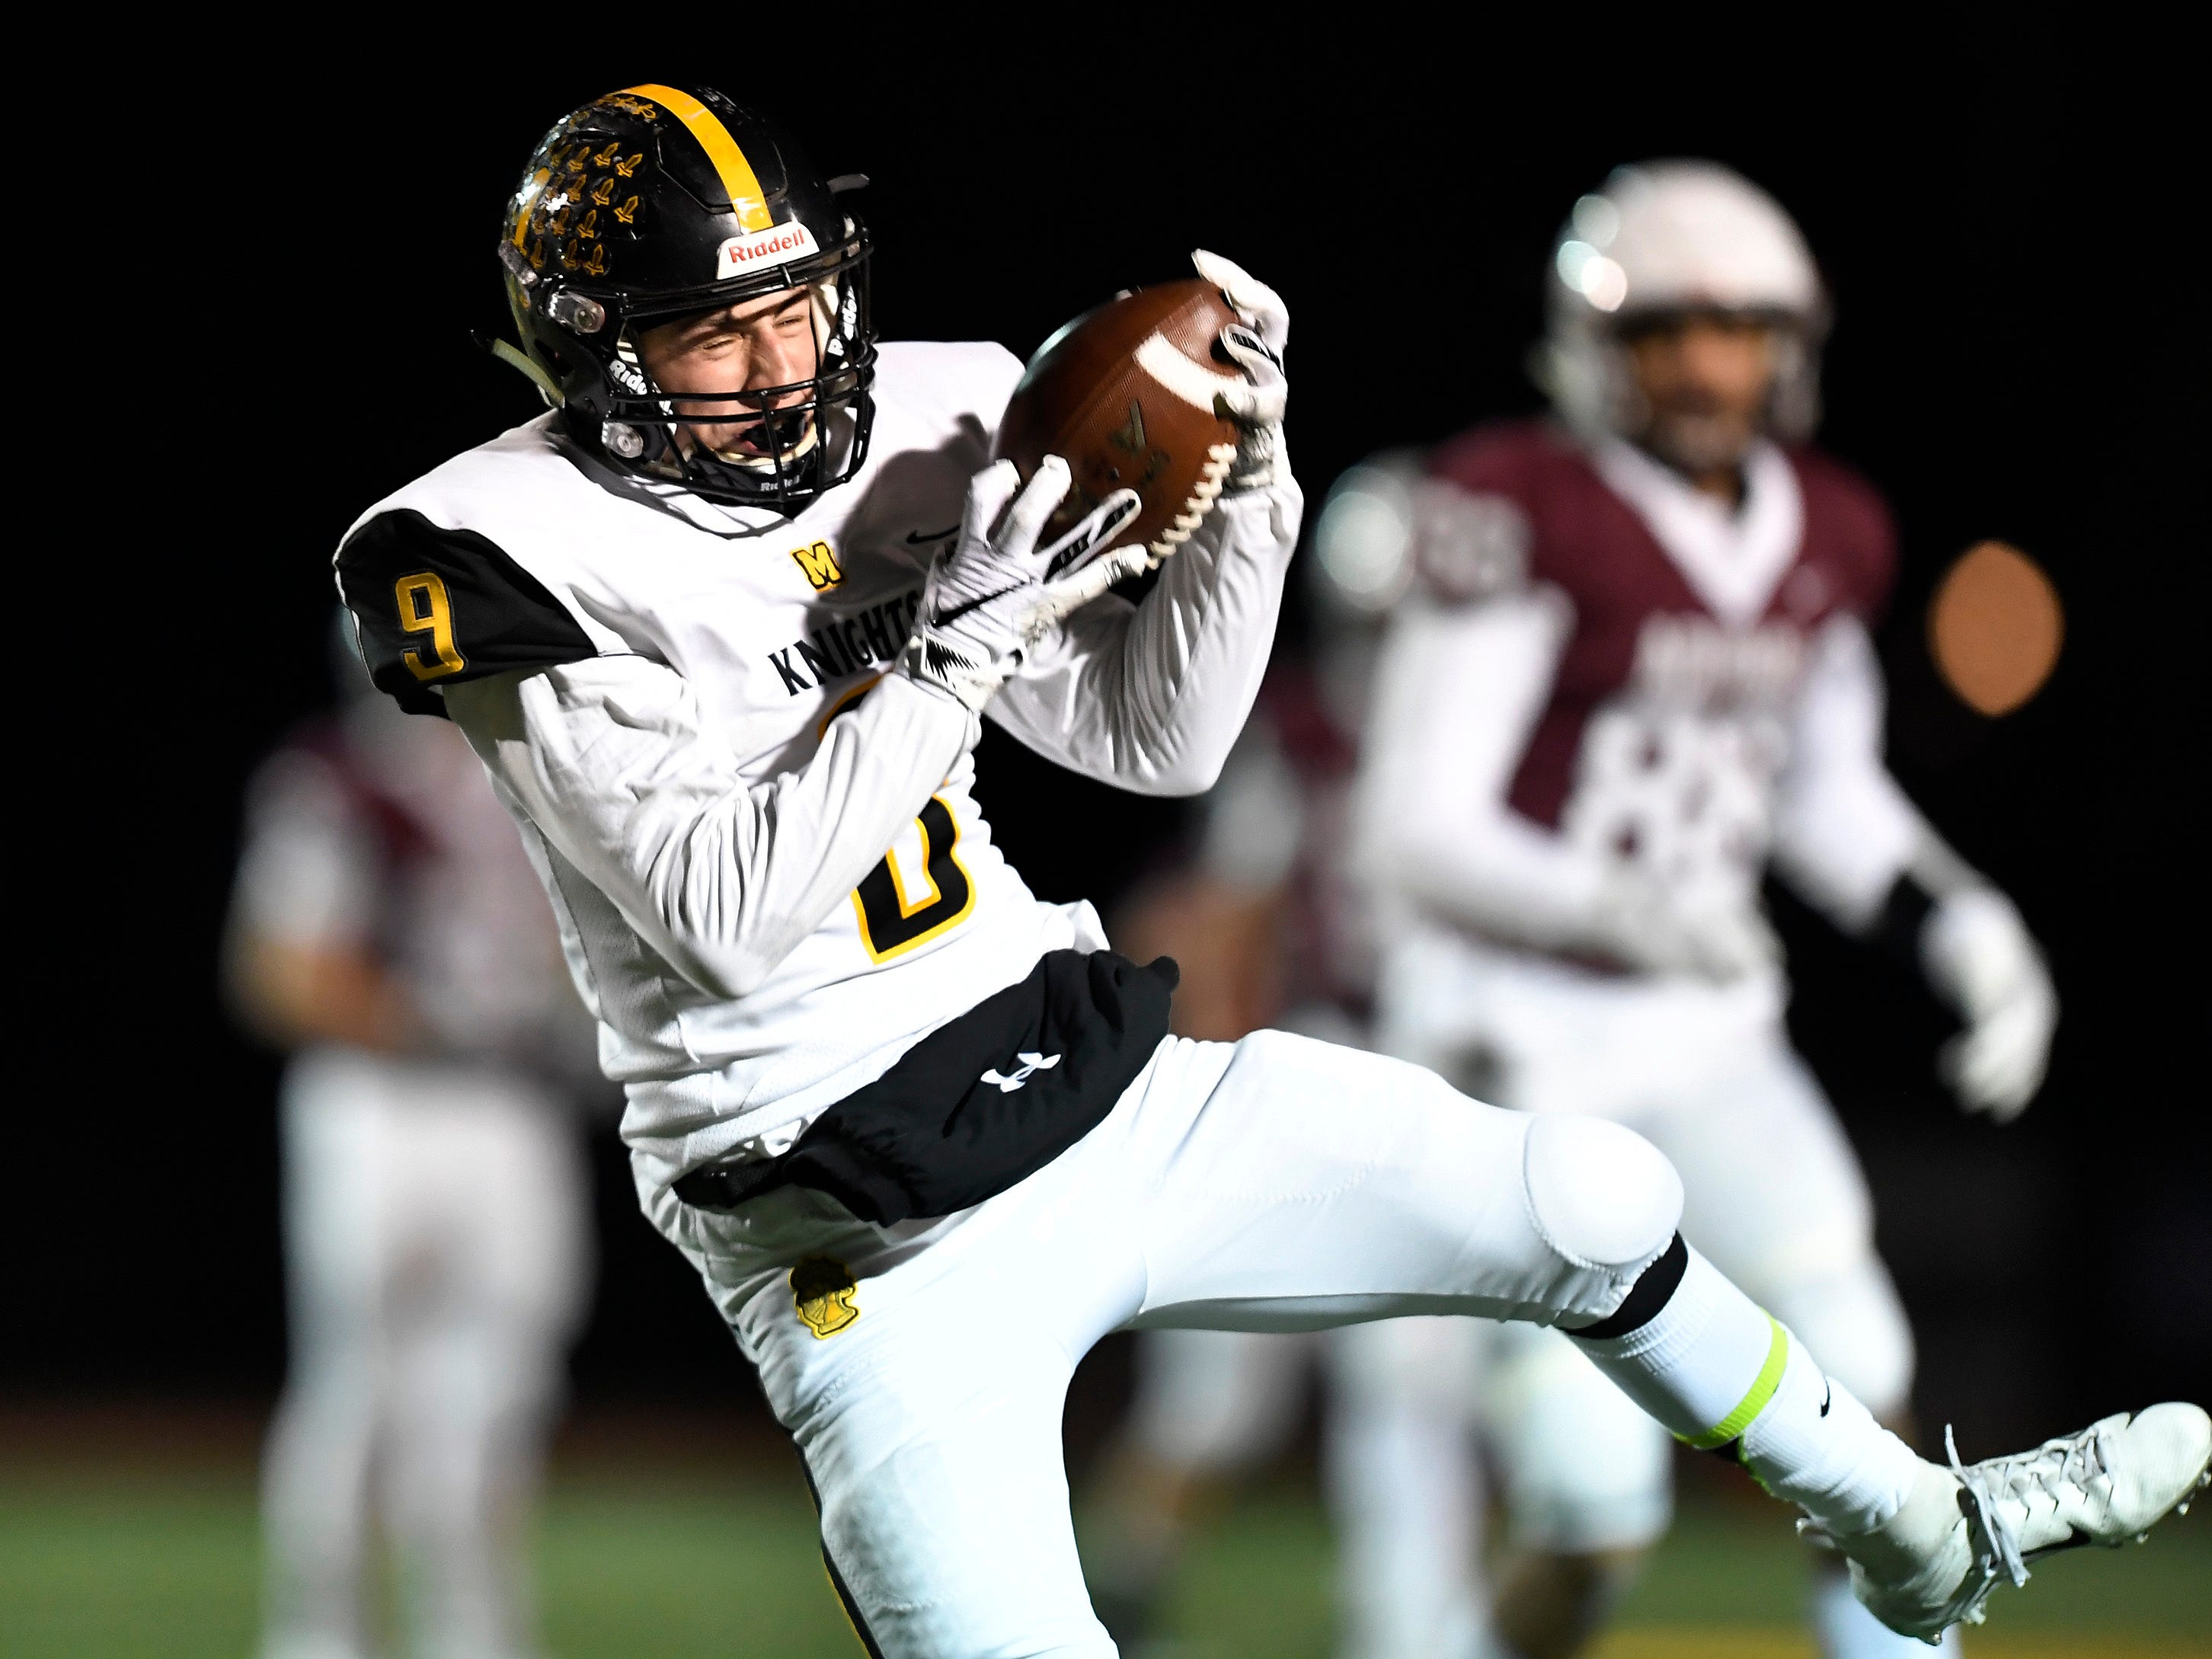 McQuaid's Ben Beauchamp intercepts a pass by Aquinas' Tyler Szalkowski during the Section V Class AA championship game at SUNY Brockport, Saturday, Nov. 3, 2018.